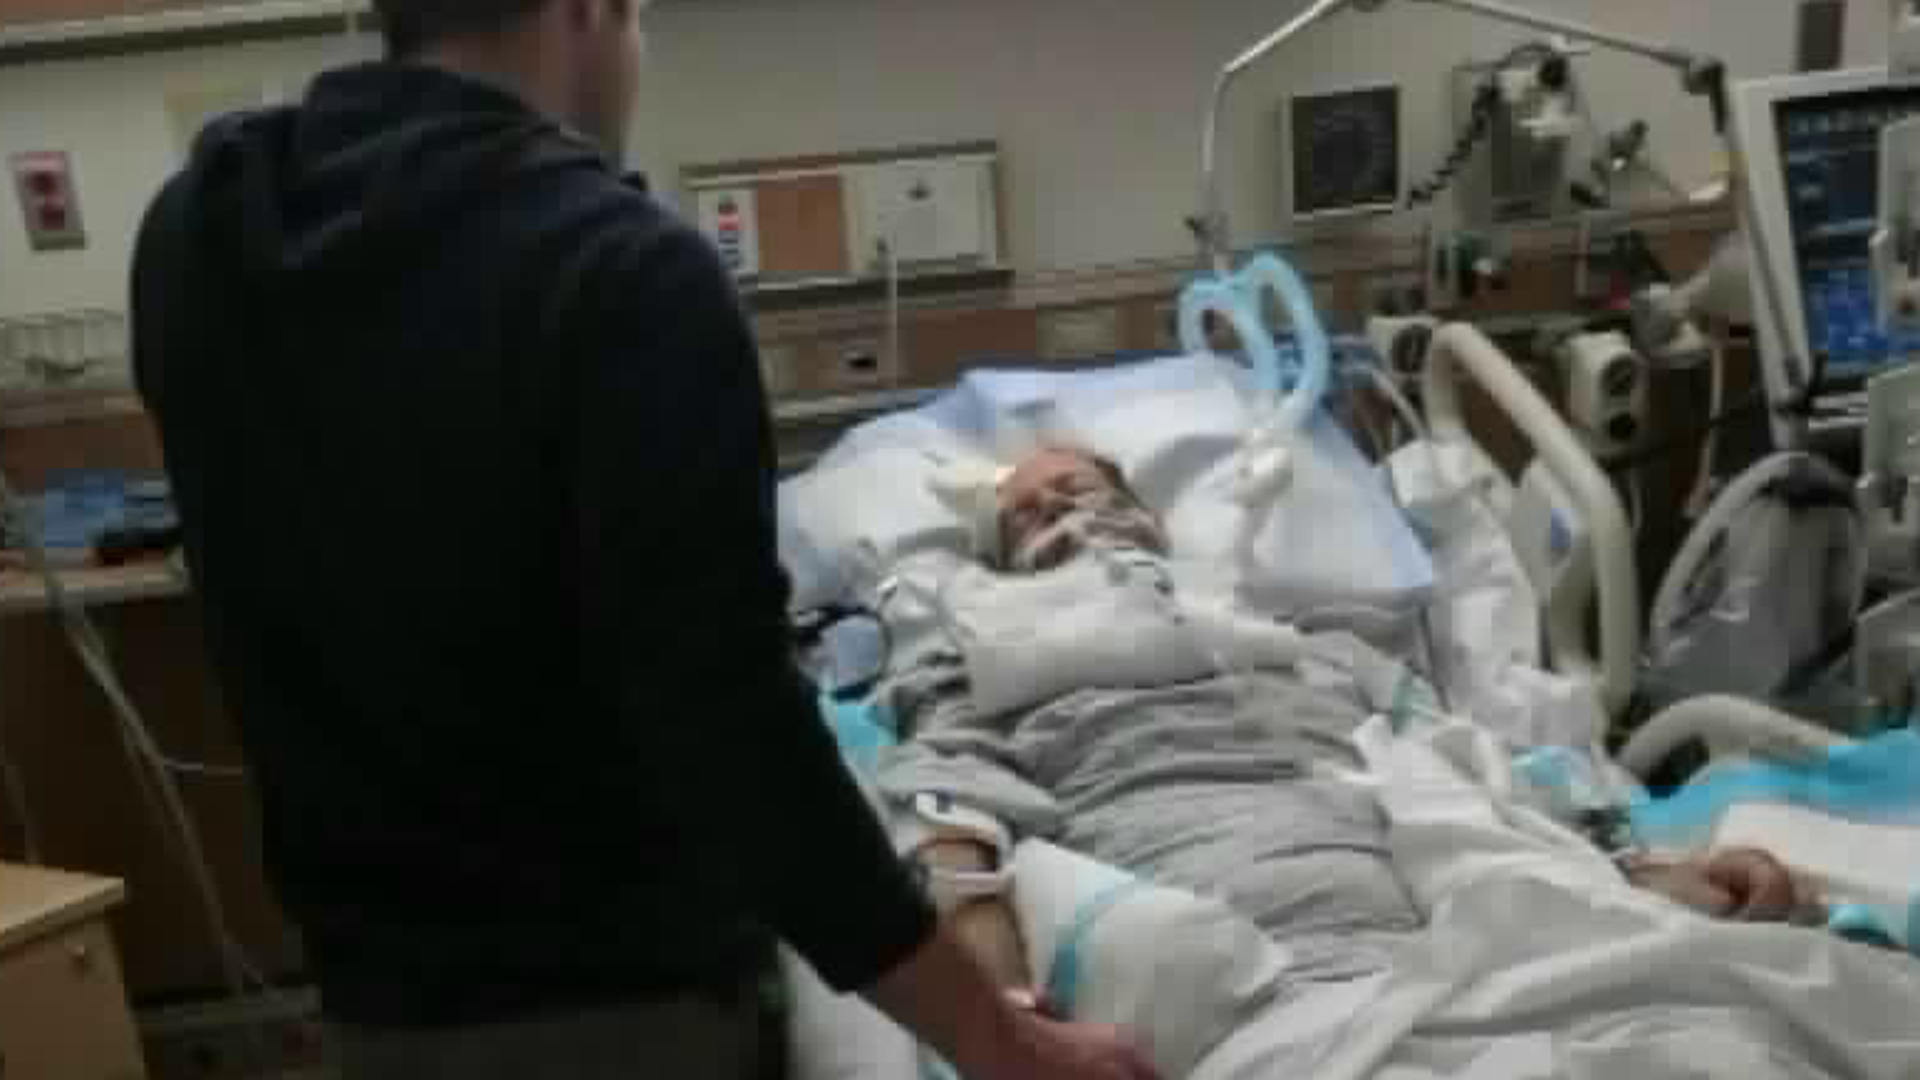 Keith Jackson, who was struck while cycling along La Tuna Canyon in Sun Valley on Dec. 9, 2017, is seen being hospitalized after the near fatal crash in this undated image provided to KTLA by his family.